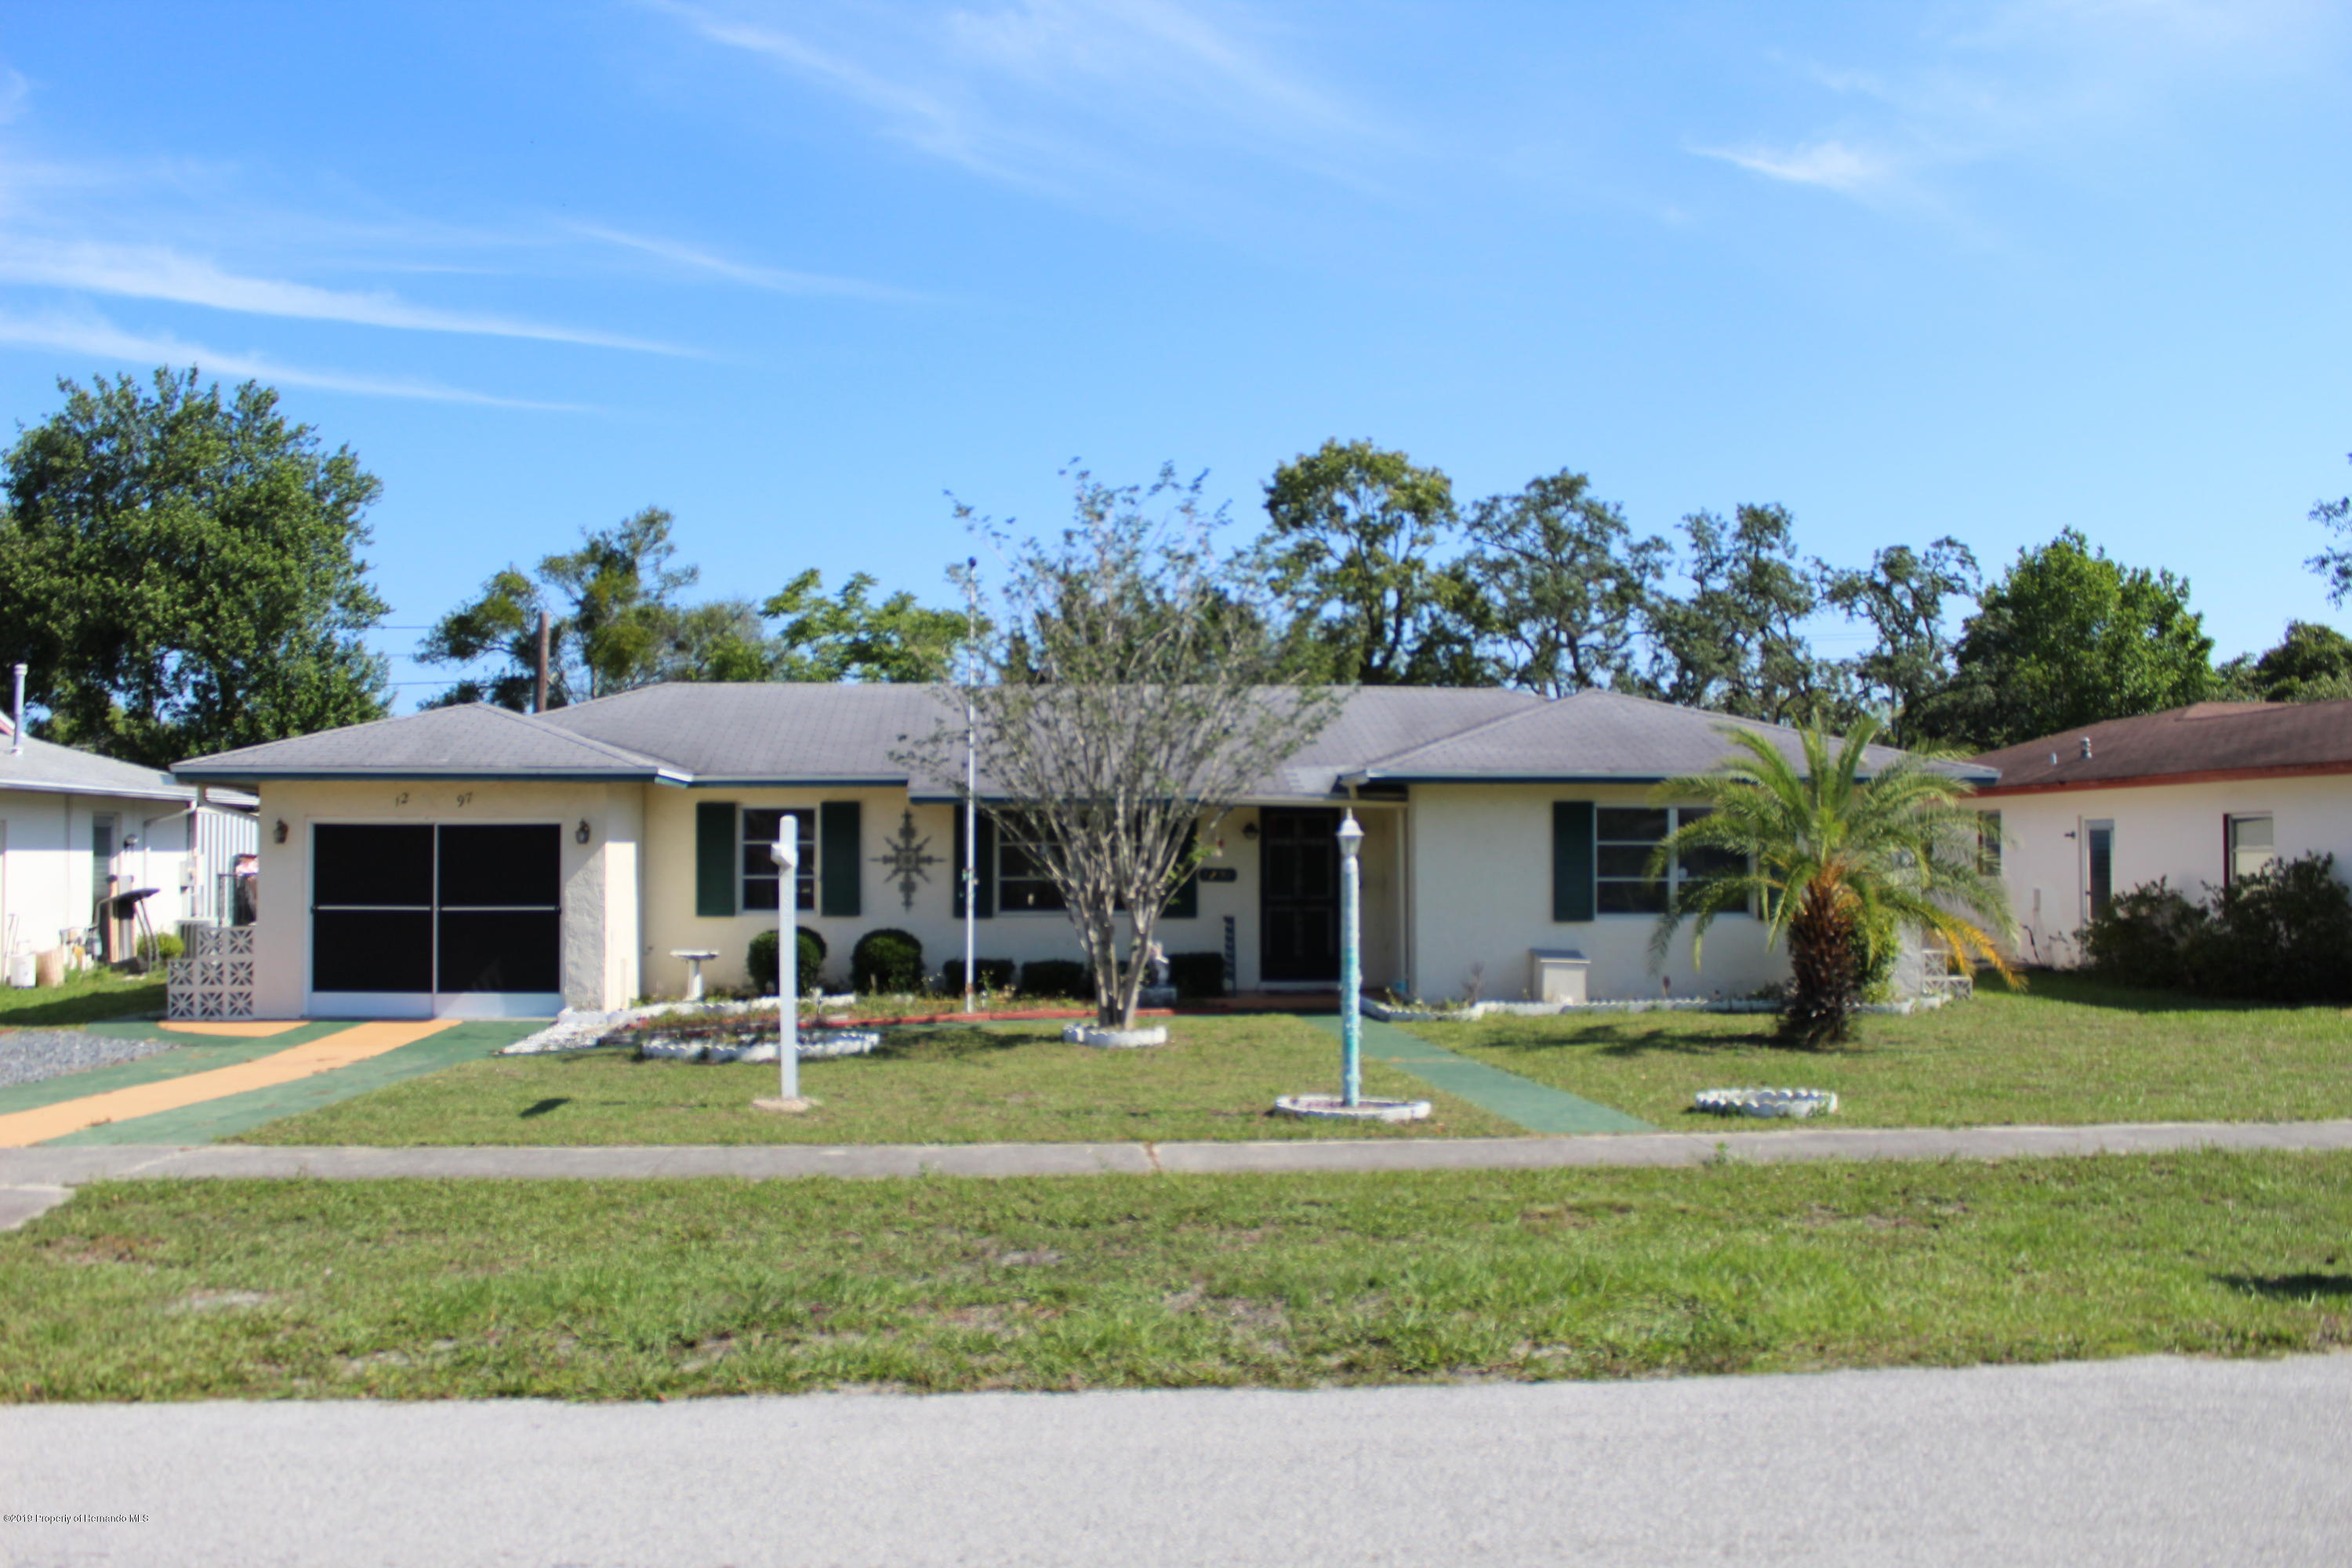 1297 Lodge Circle, Spring Hill, Florida 34606, 2 Bedrooms Bedrooms, ,1 BathroomBathrooms,Residential,For Sale,Lodge,2201266